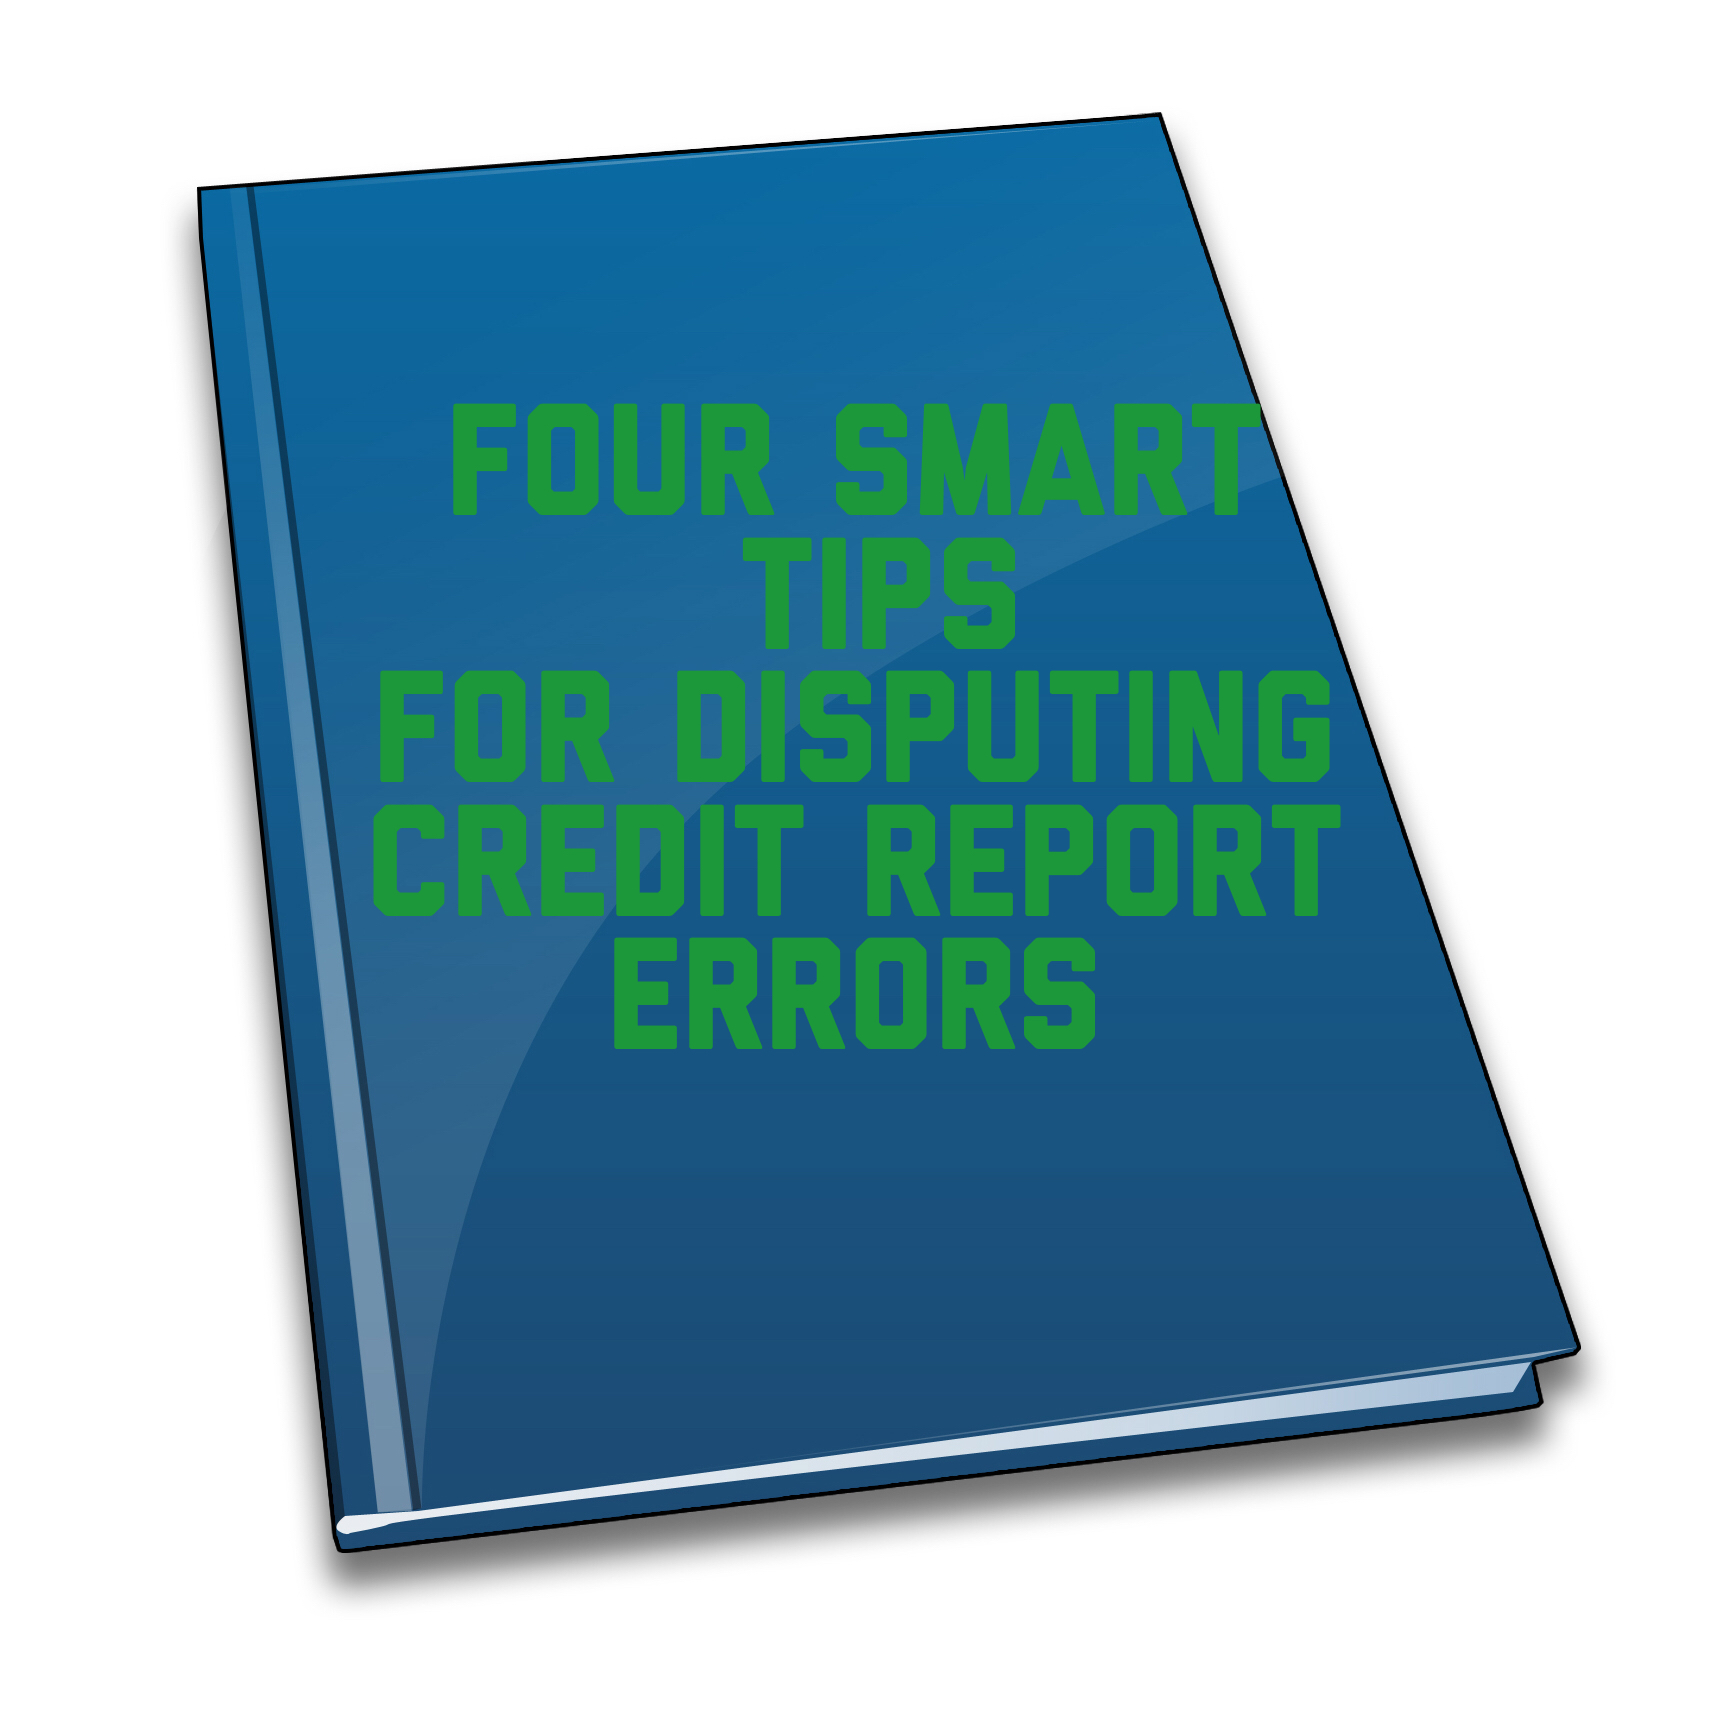 credit report errors Evaluating credit report ing errors for litigation by fred miller  [this article is reprinted with permission from the advocate, the newsletter of.